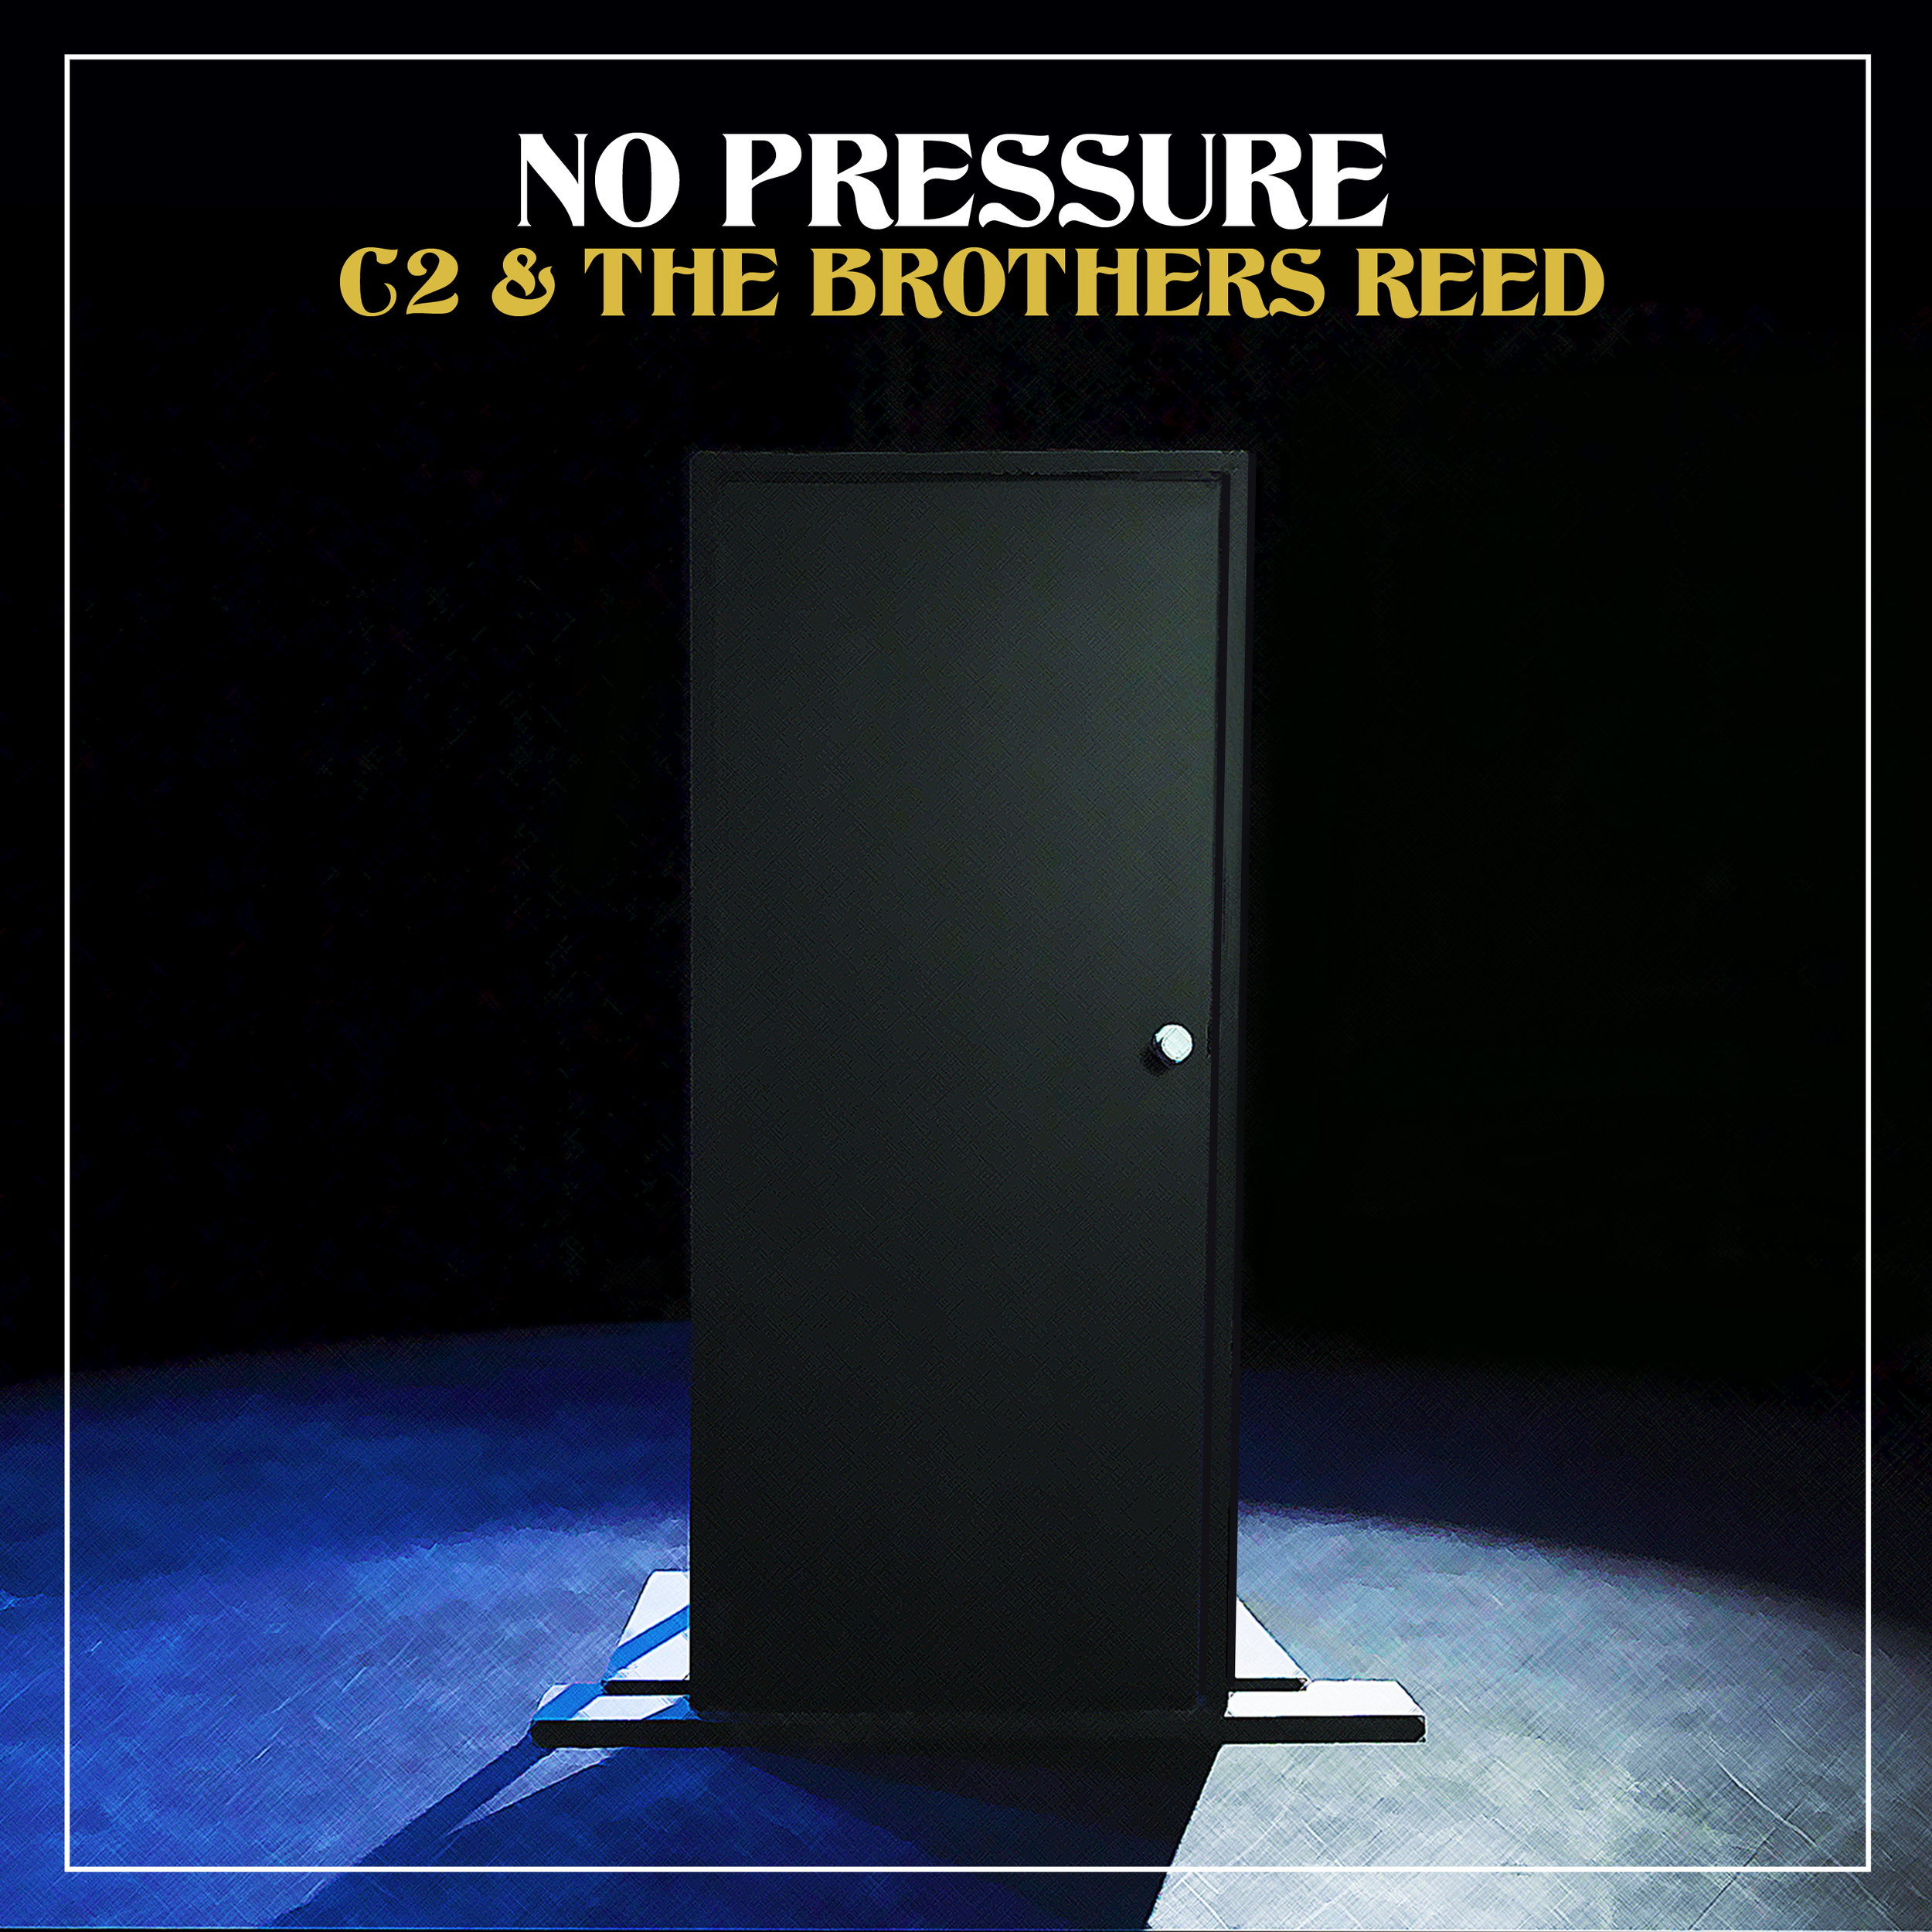 no pressure single art.jpg